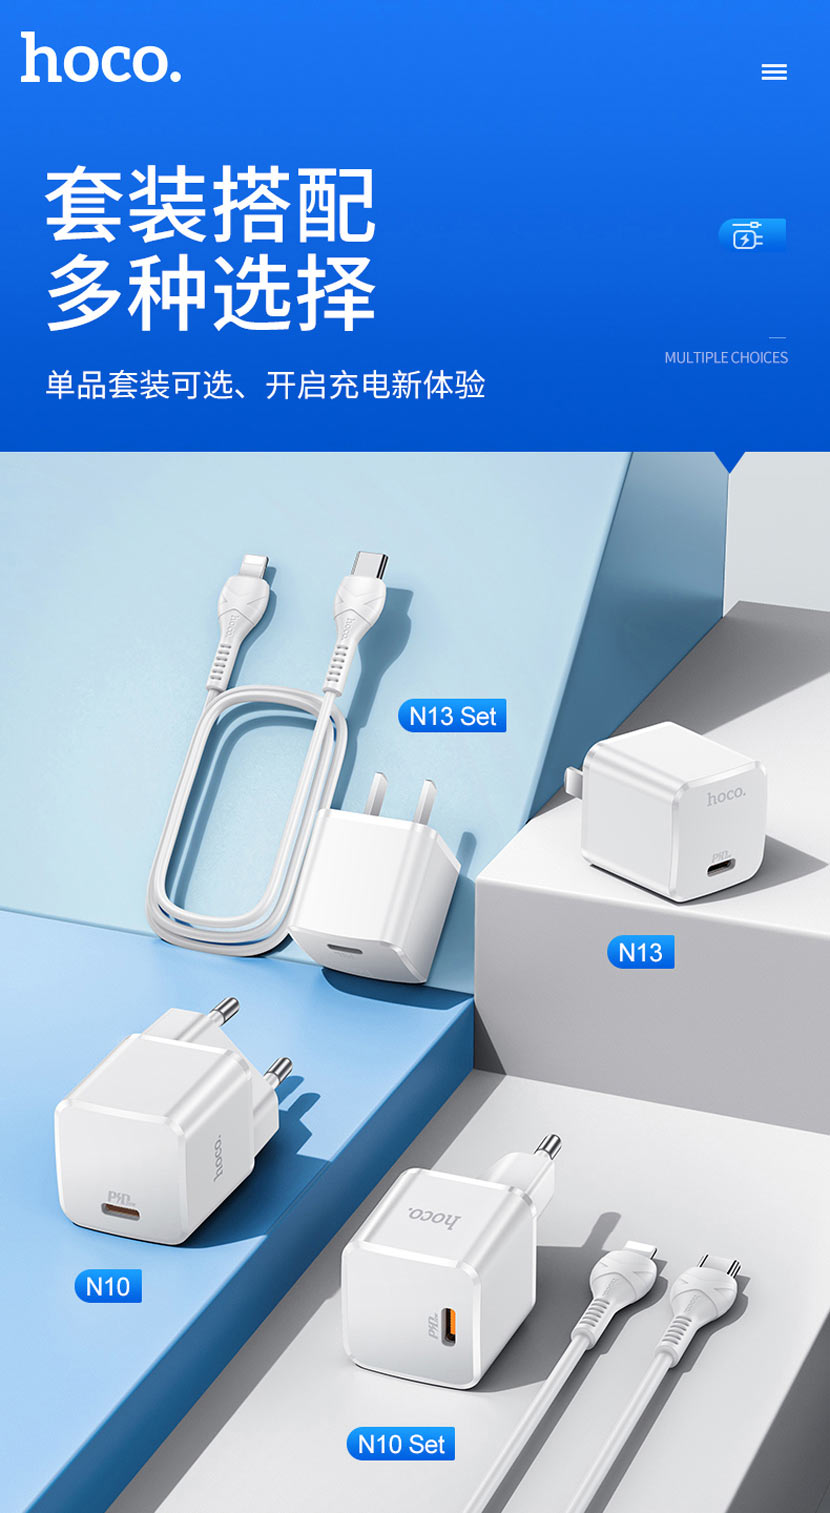 hoco news n10 n13 starter single port pd20w wall charger set cn